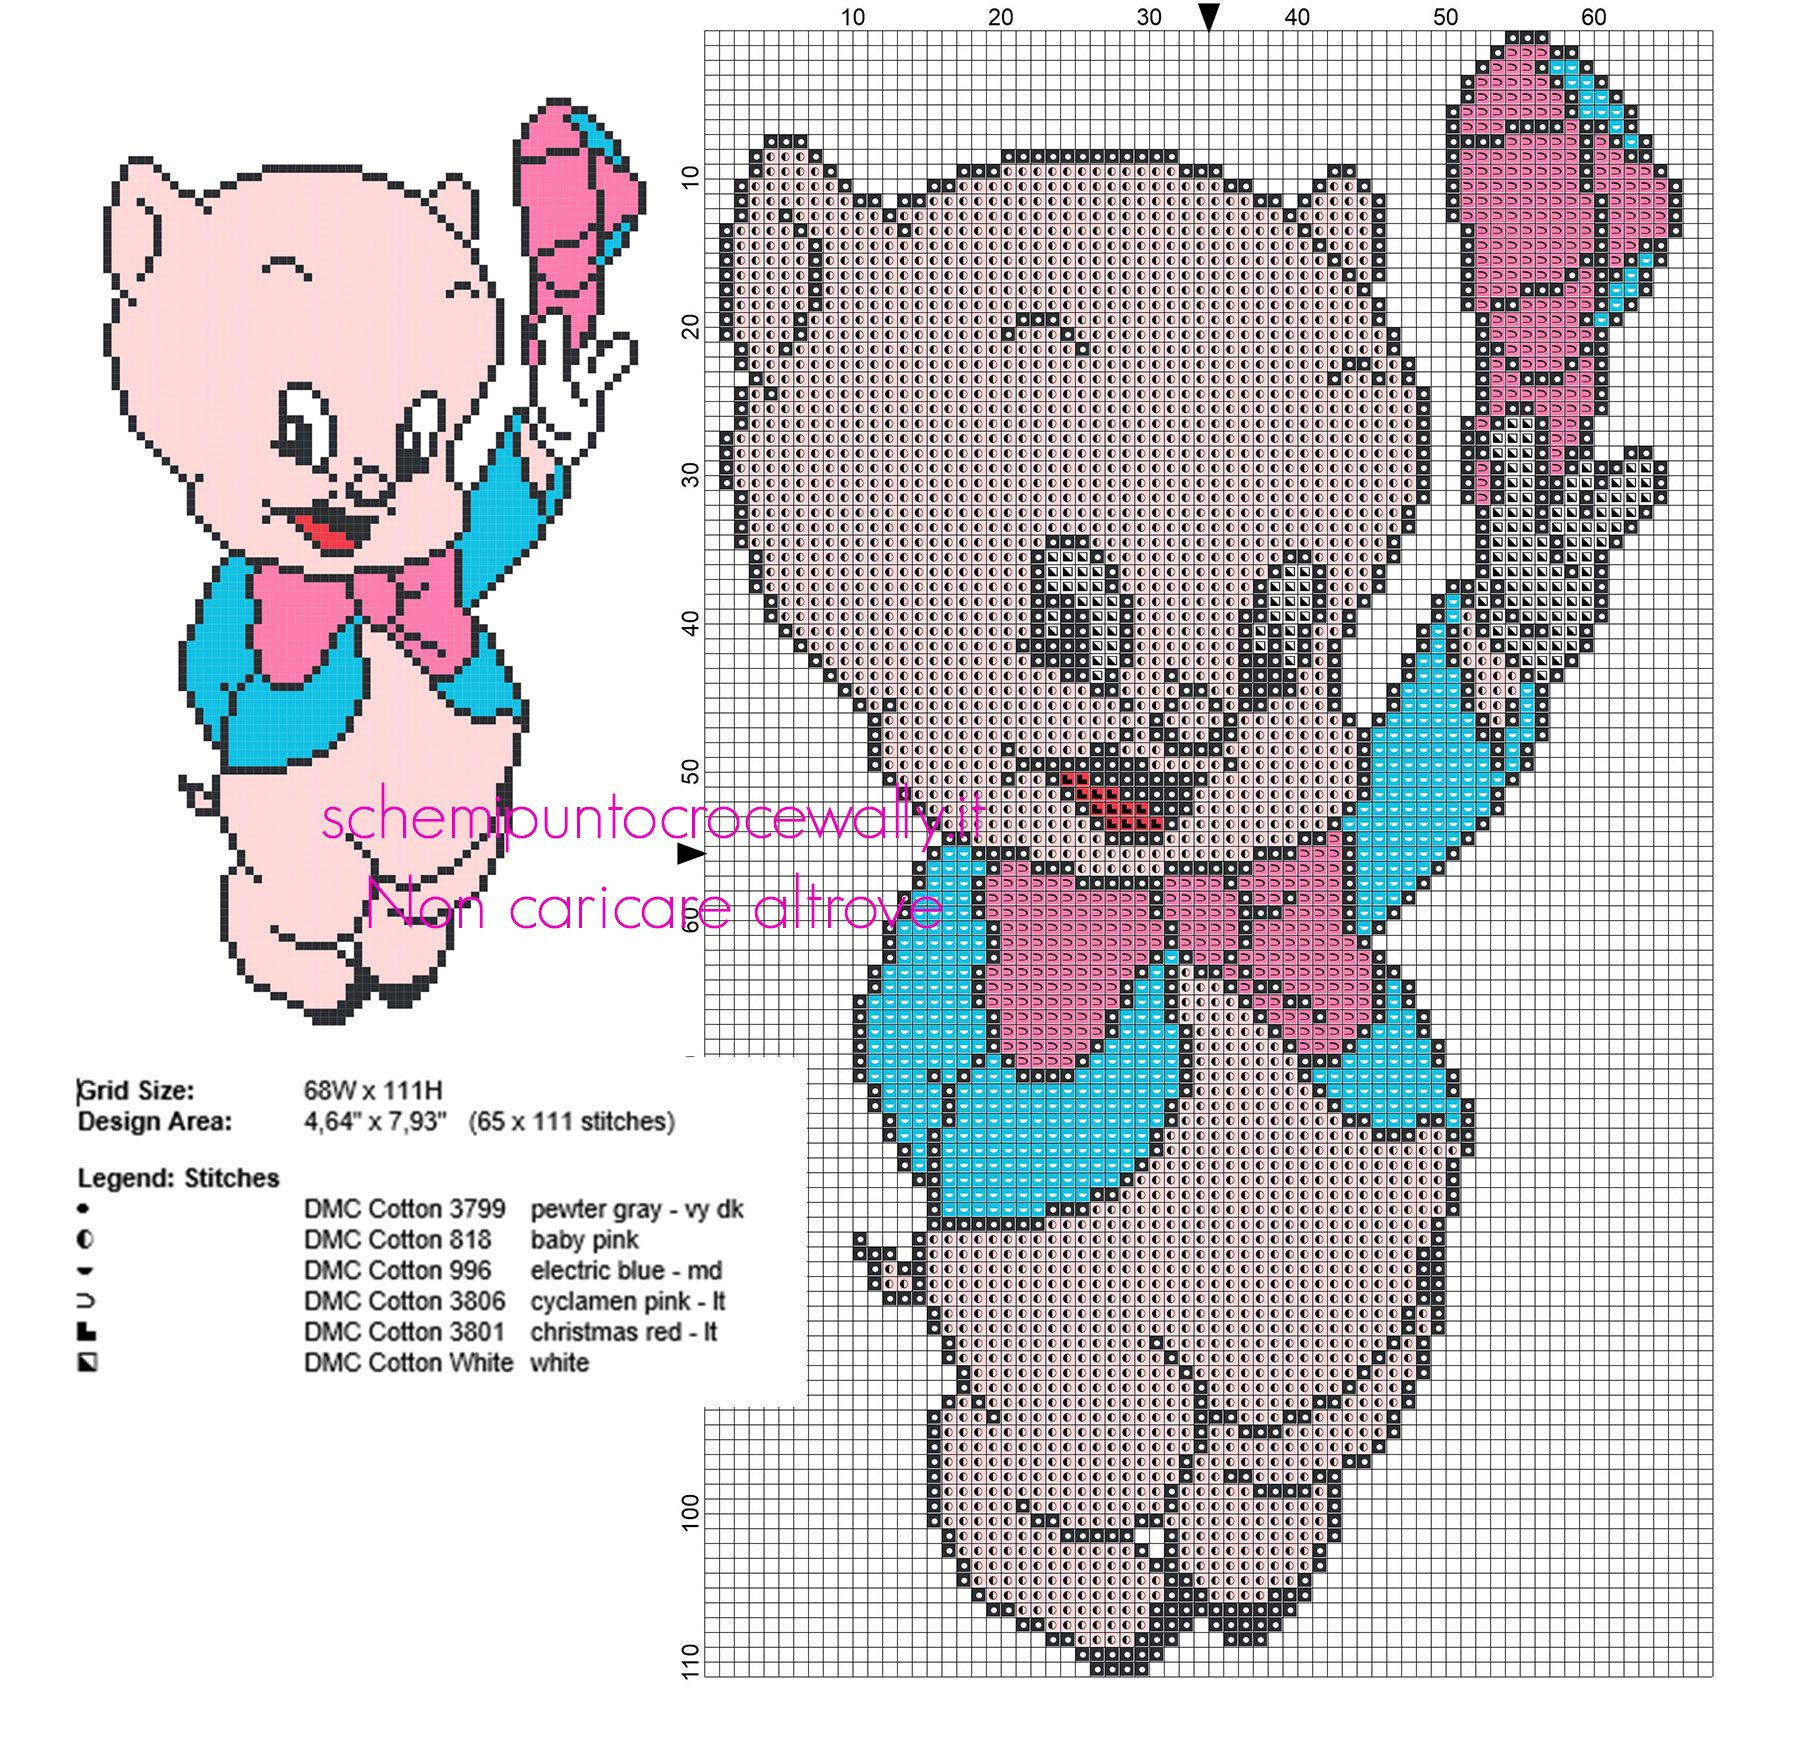 Cross Stitch Free Cross Stitch Patterns Cross Stitch Supplies Message Board Cross Stitchers Tools Meet the Designer Newsletter Signup